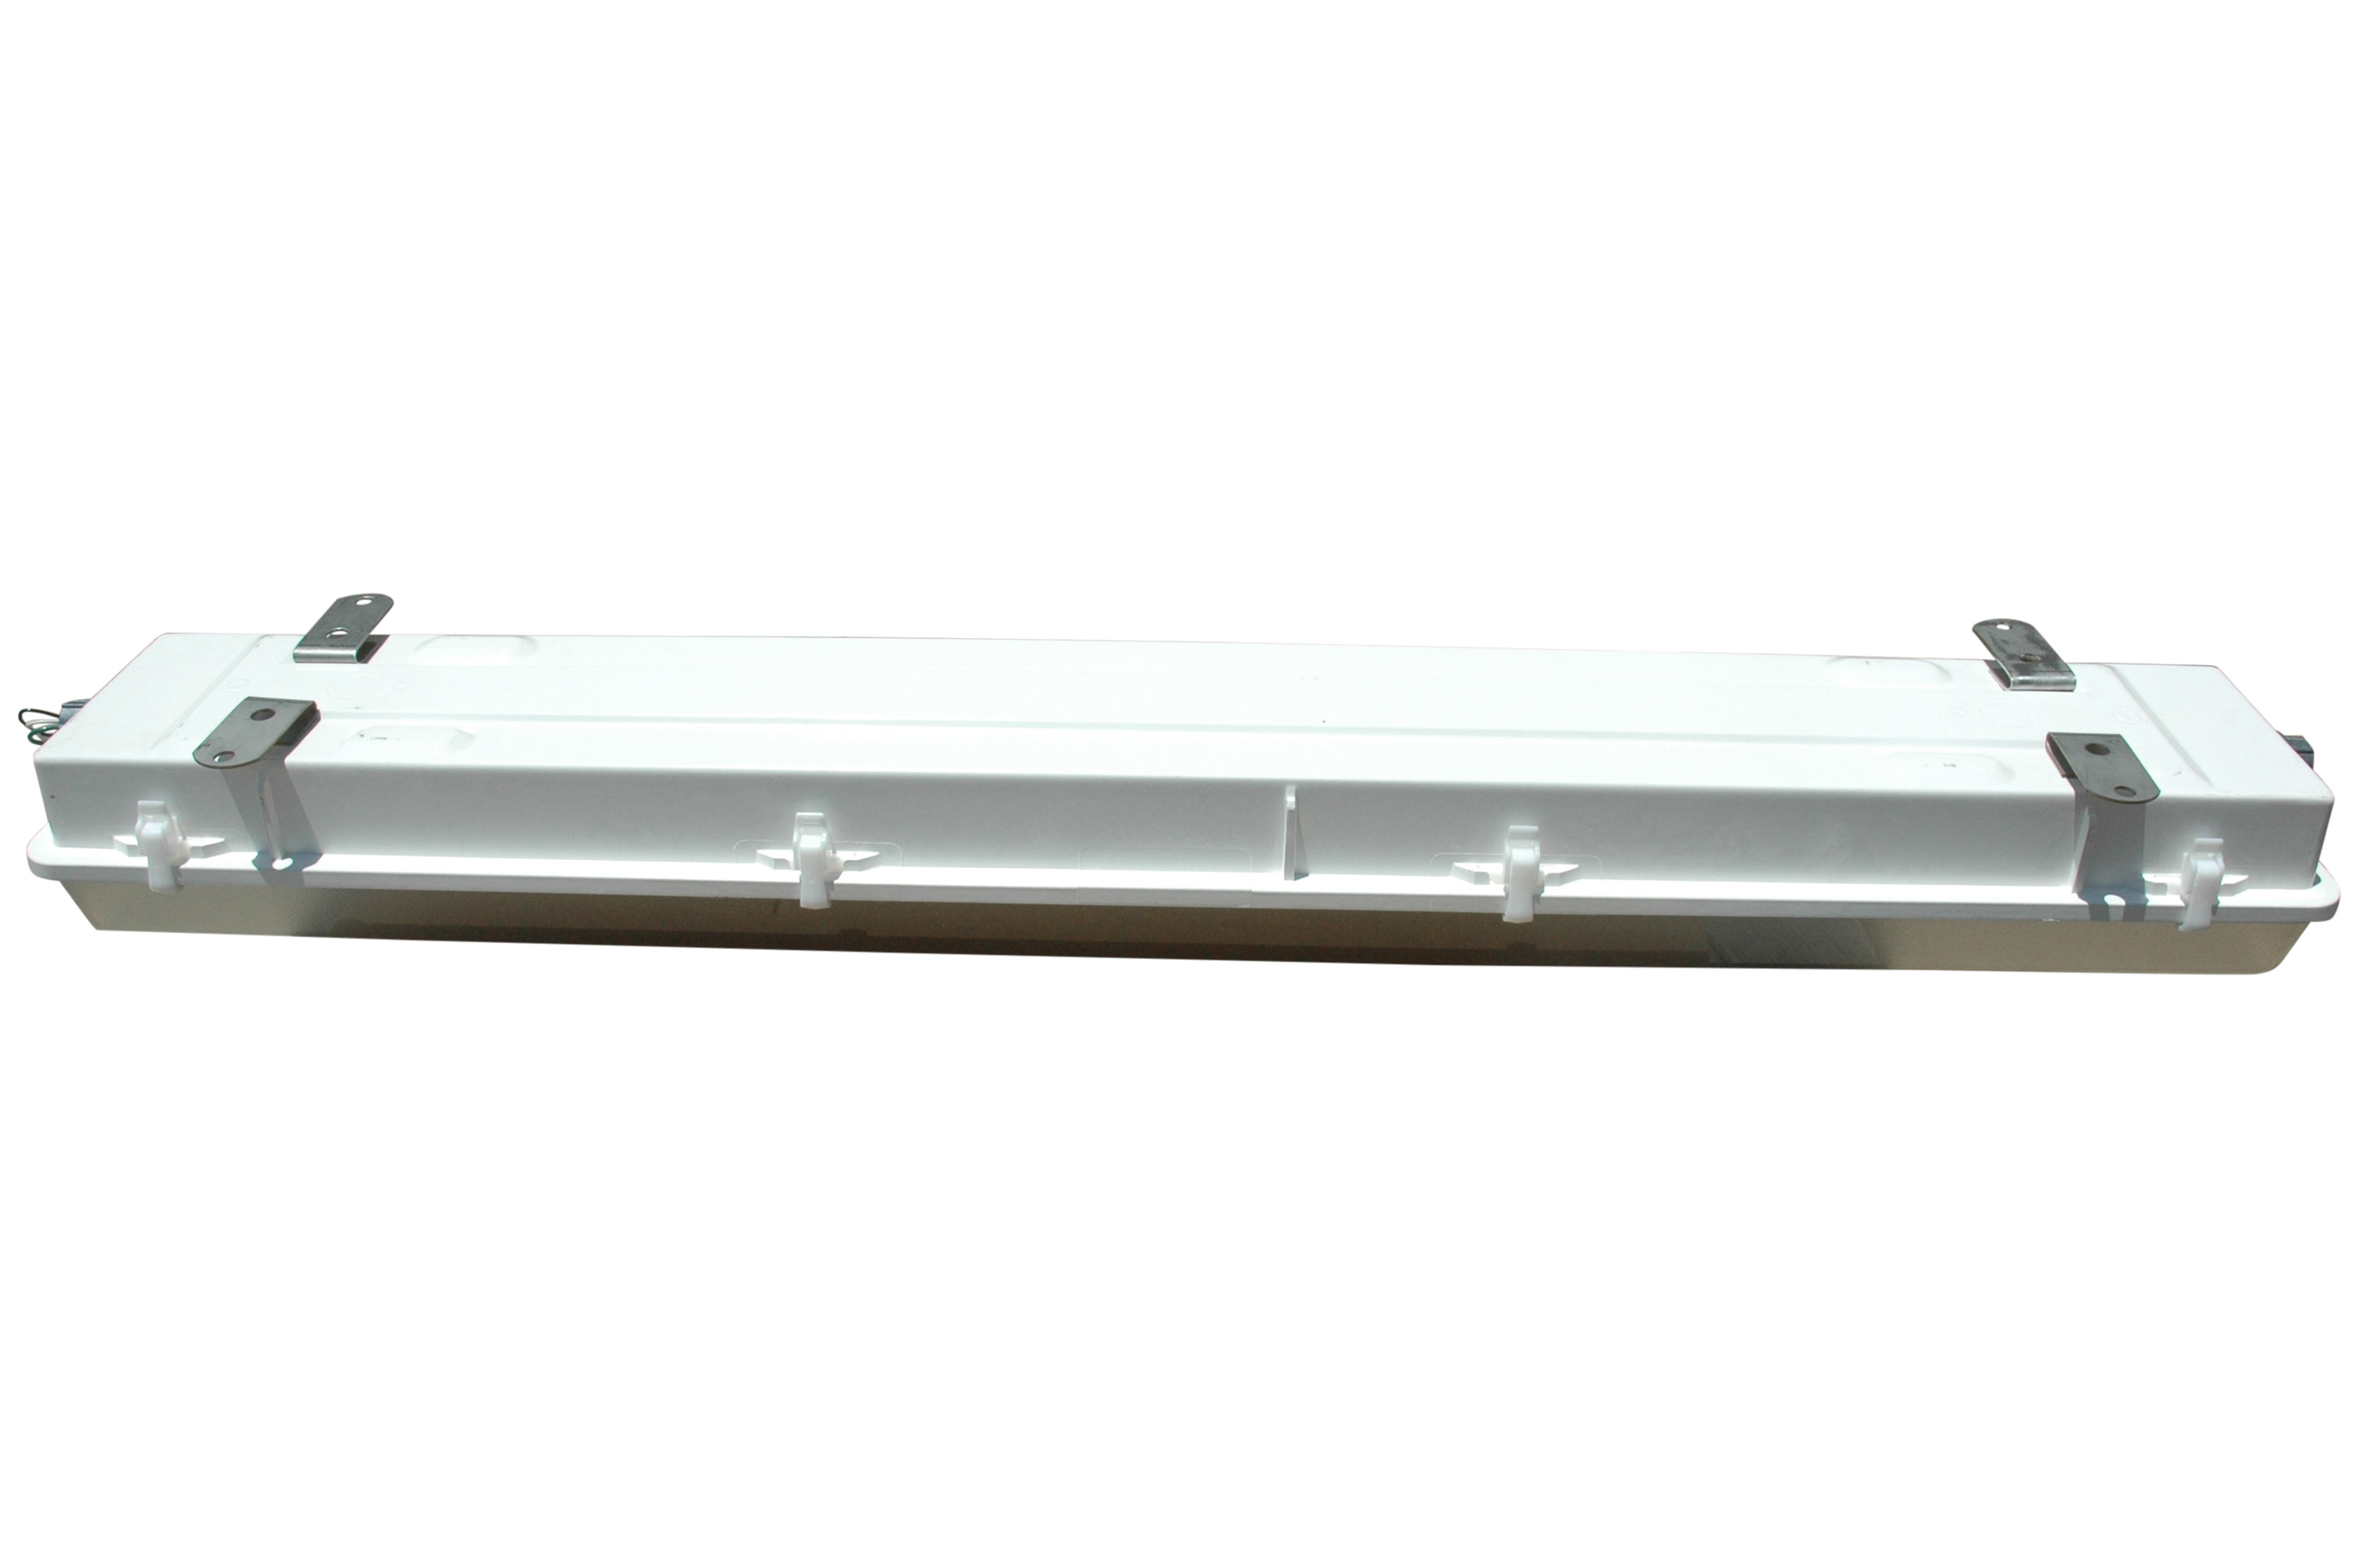 Surface Mounted Class 1 Division 2 Fluorescent Light Fixture With Type Stainless Steel Mountshazardous Area For Use In Wet